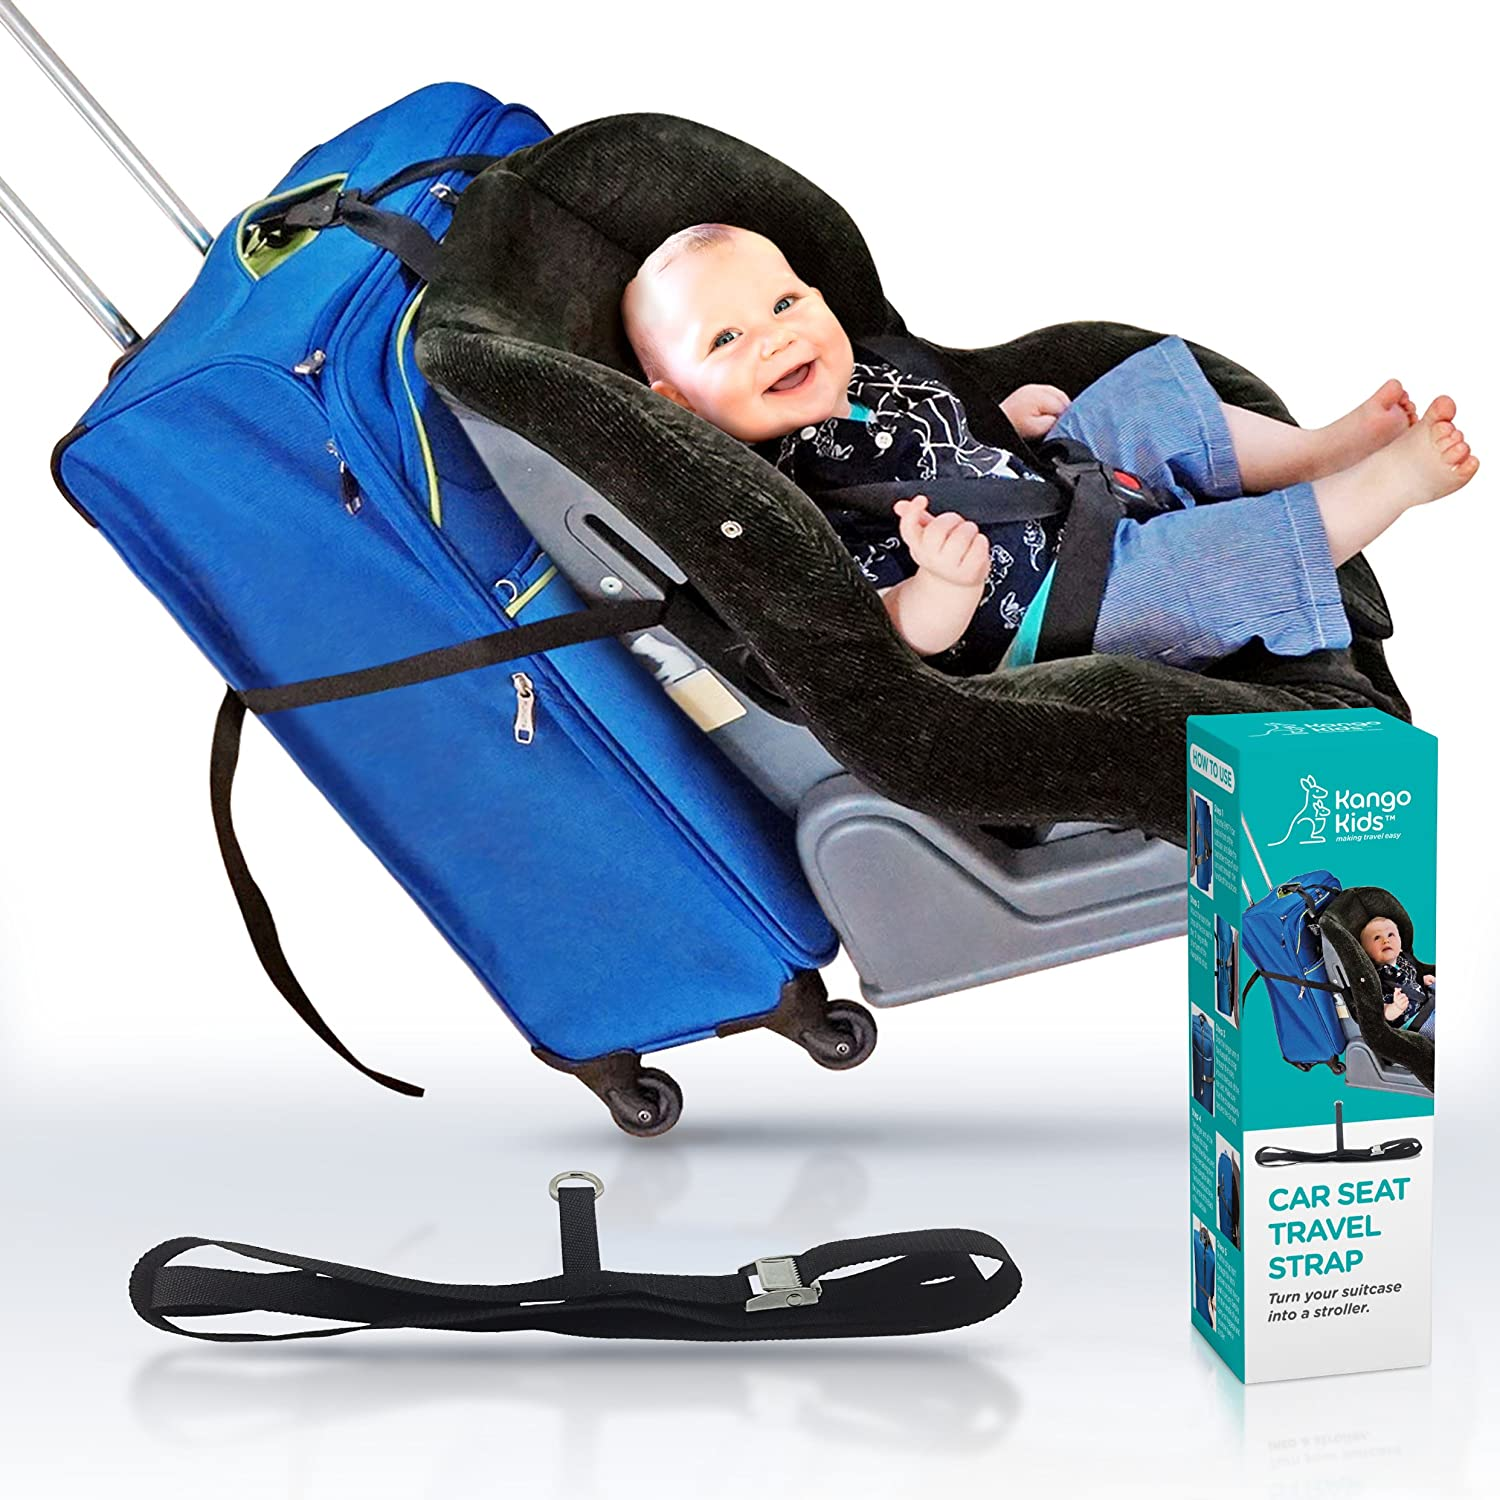 Amazon CAR SEAT STRAP Turn Your CarSeat And Carry On Luggage Into An Airport Stroller